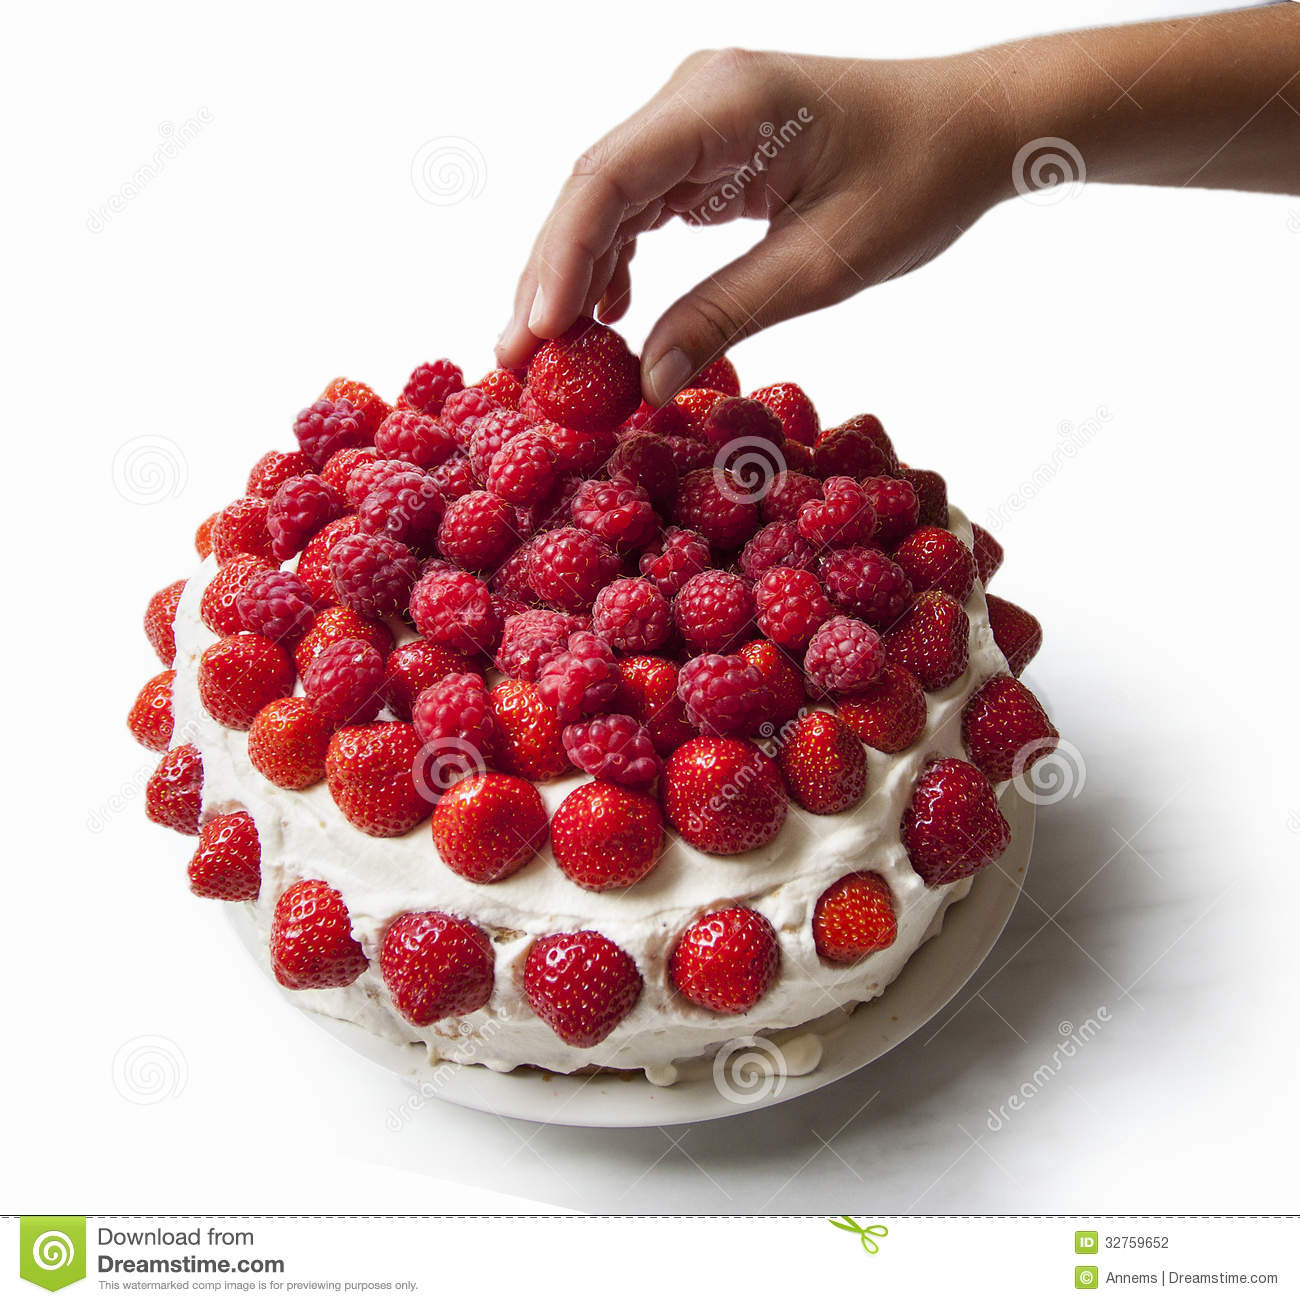 How To Decorate A Cake With Strawberries And Raspberries